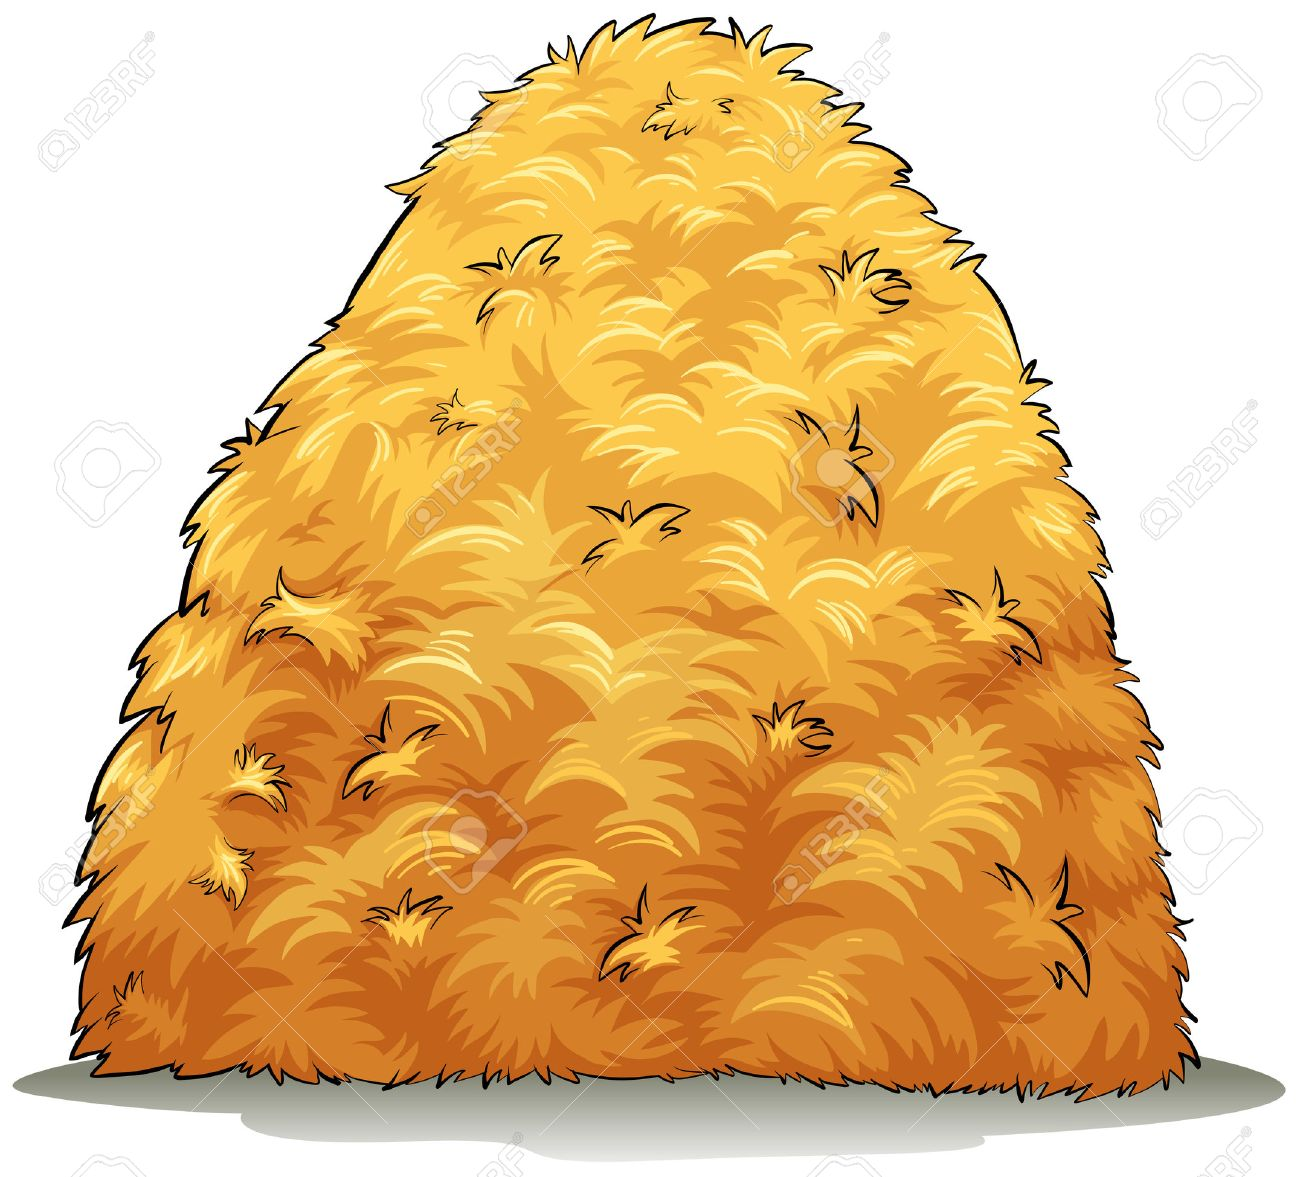 1 020 the haystack stock illustrations cliparts and royalty free rh 123rf com fall haystack clipart Haystack Drawing